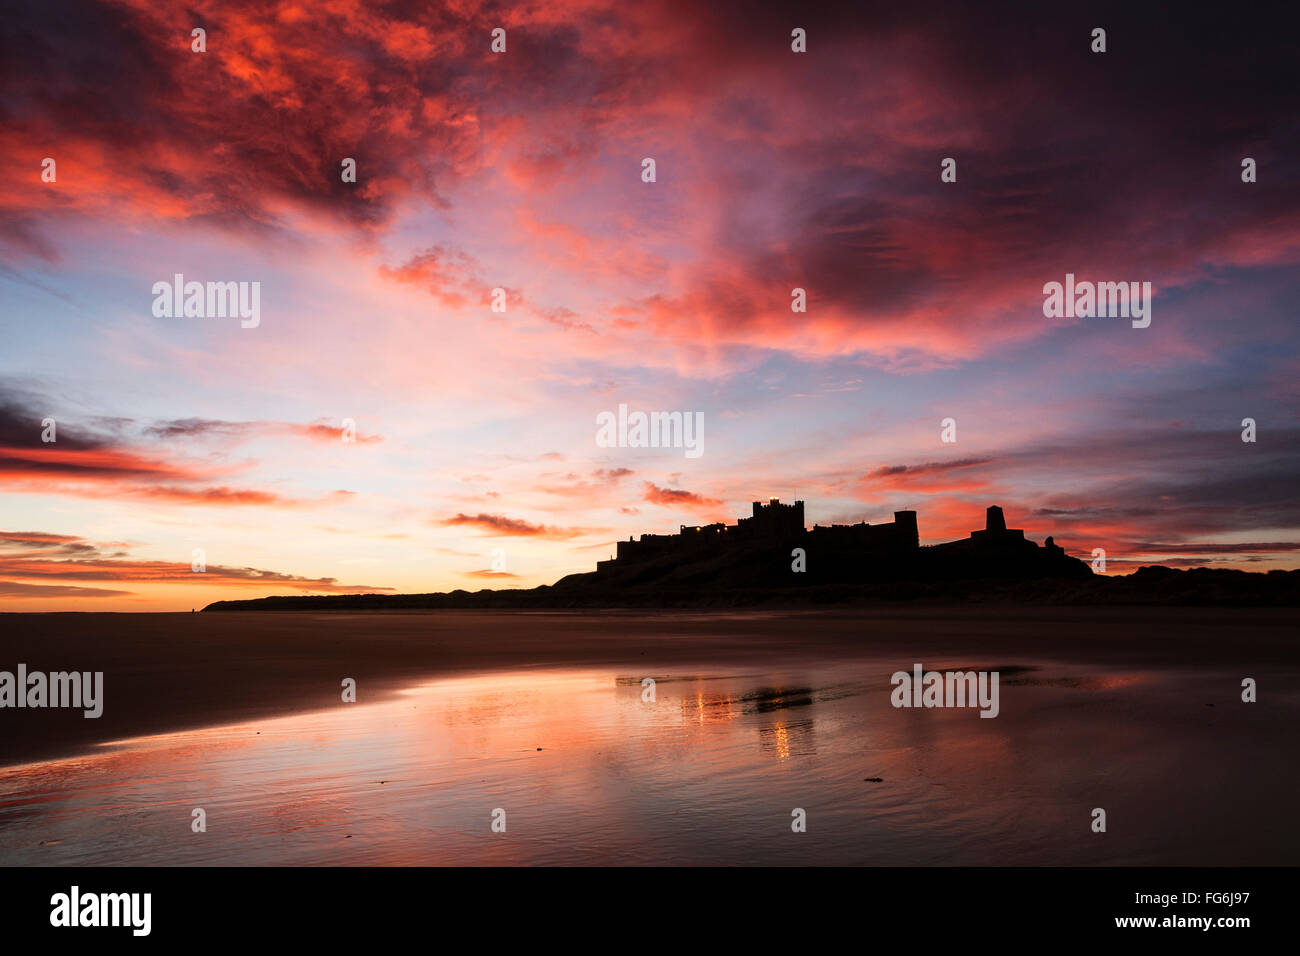 Bamburgh Castle viewed from Bamburgh Beach at sunrise, Bamburgh, Northumberland, England, United Kingdom - Stock Image